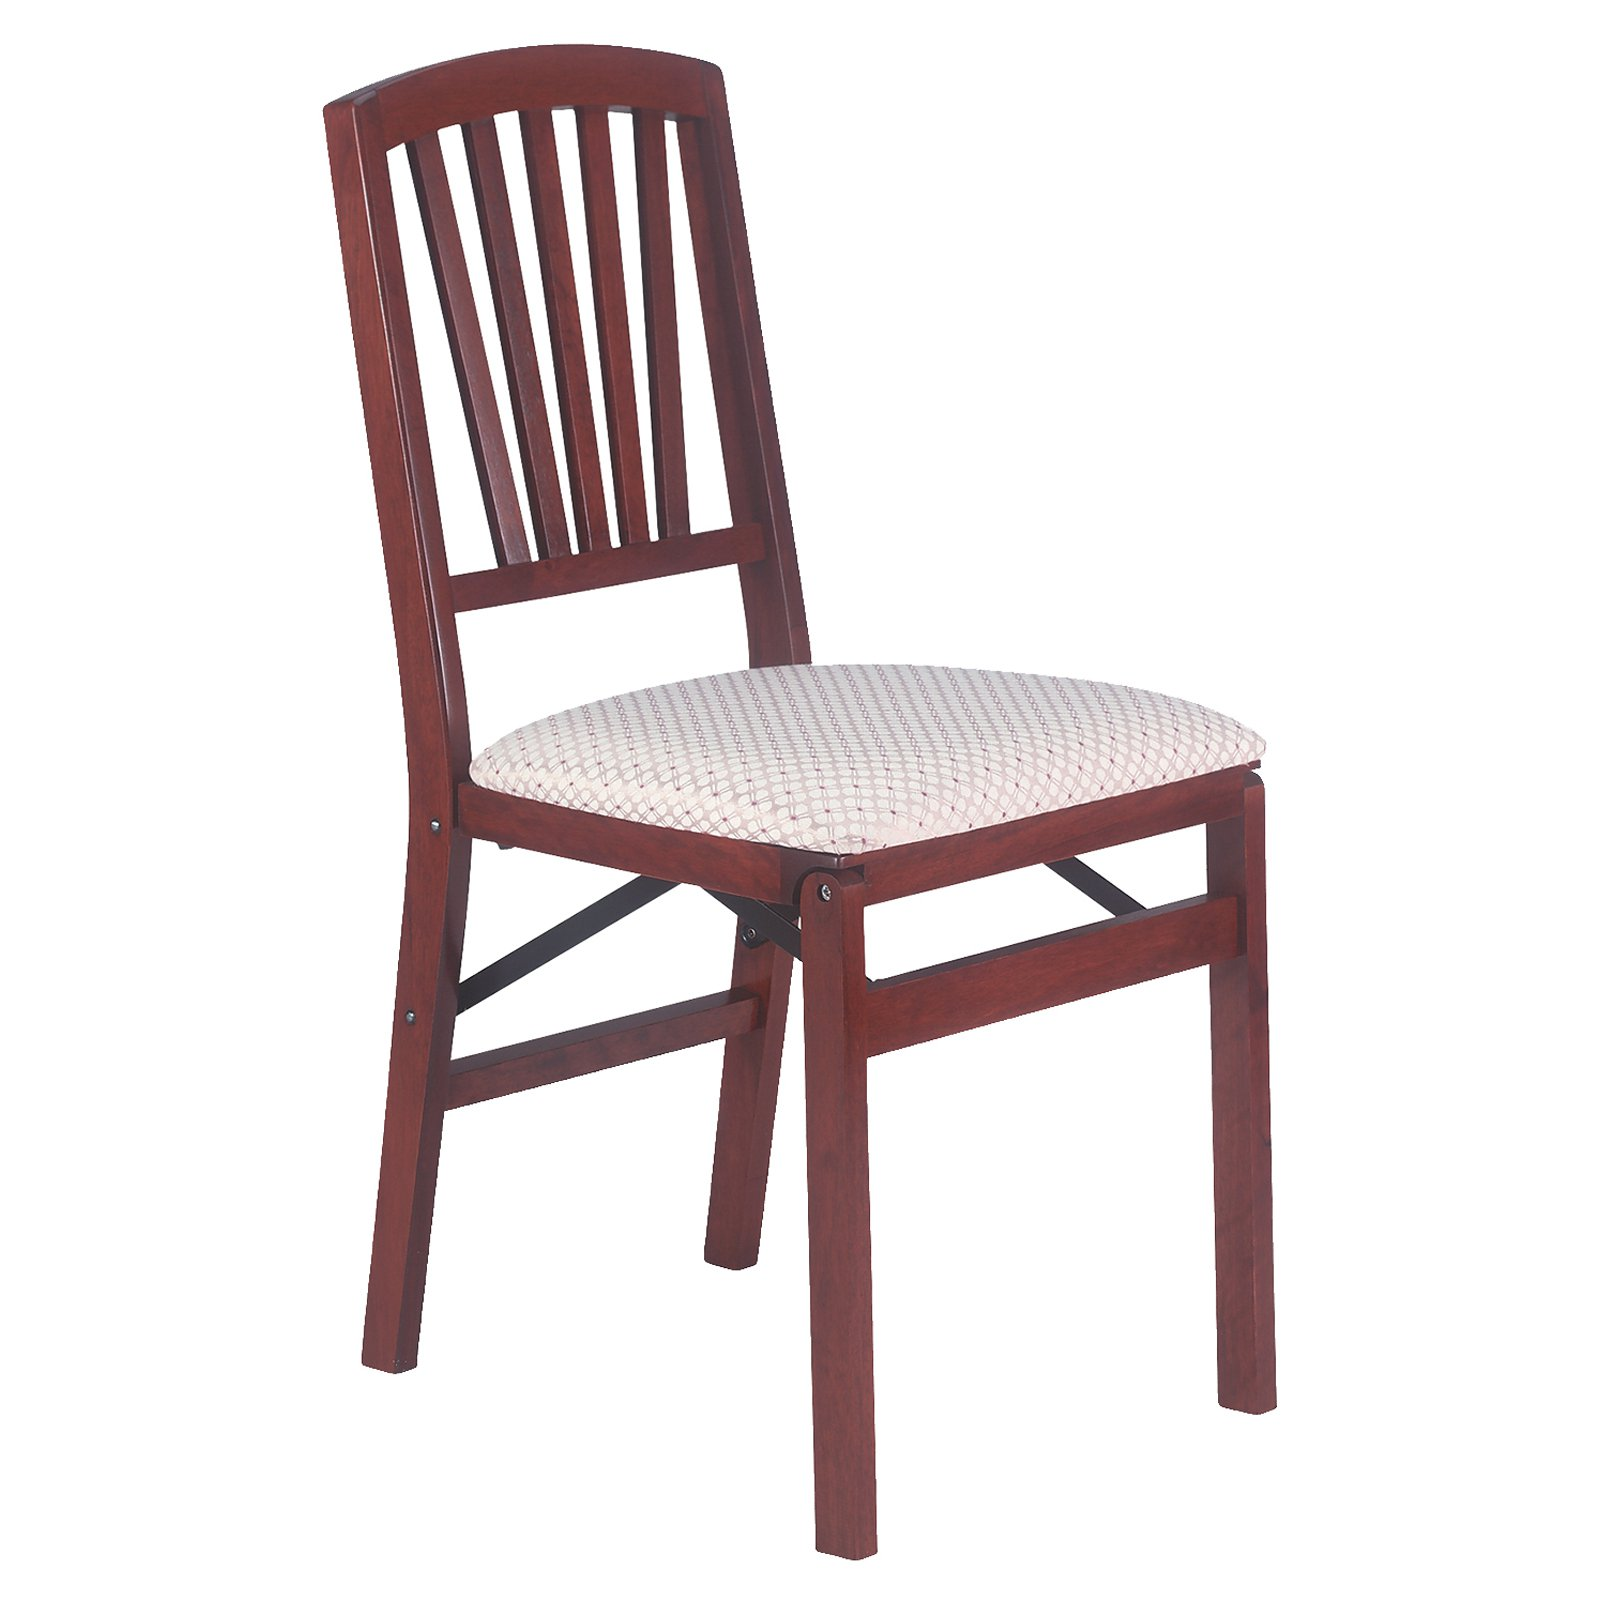 Classic Hardwood Slat back folding chair Blush fabric and light